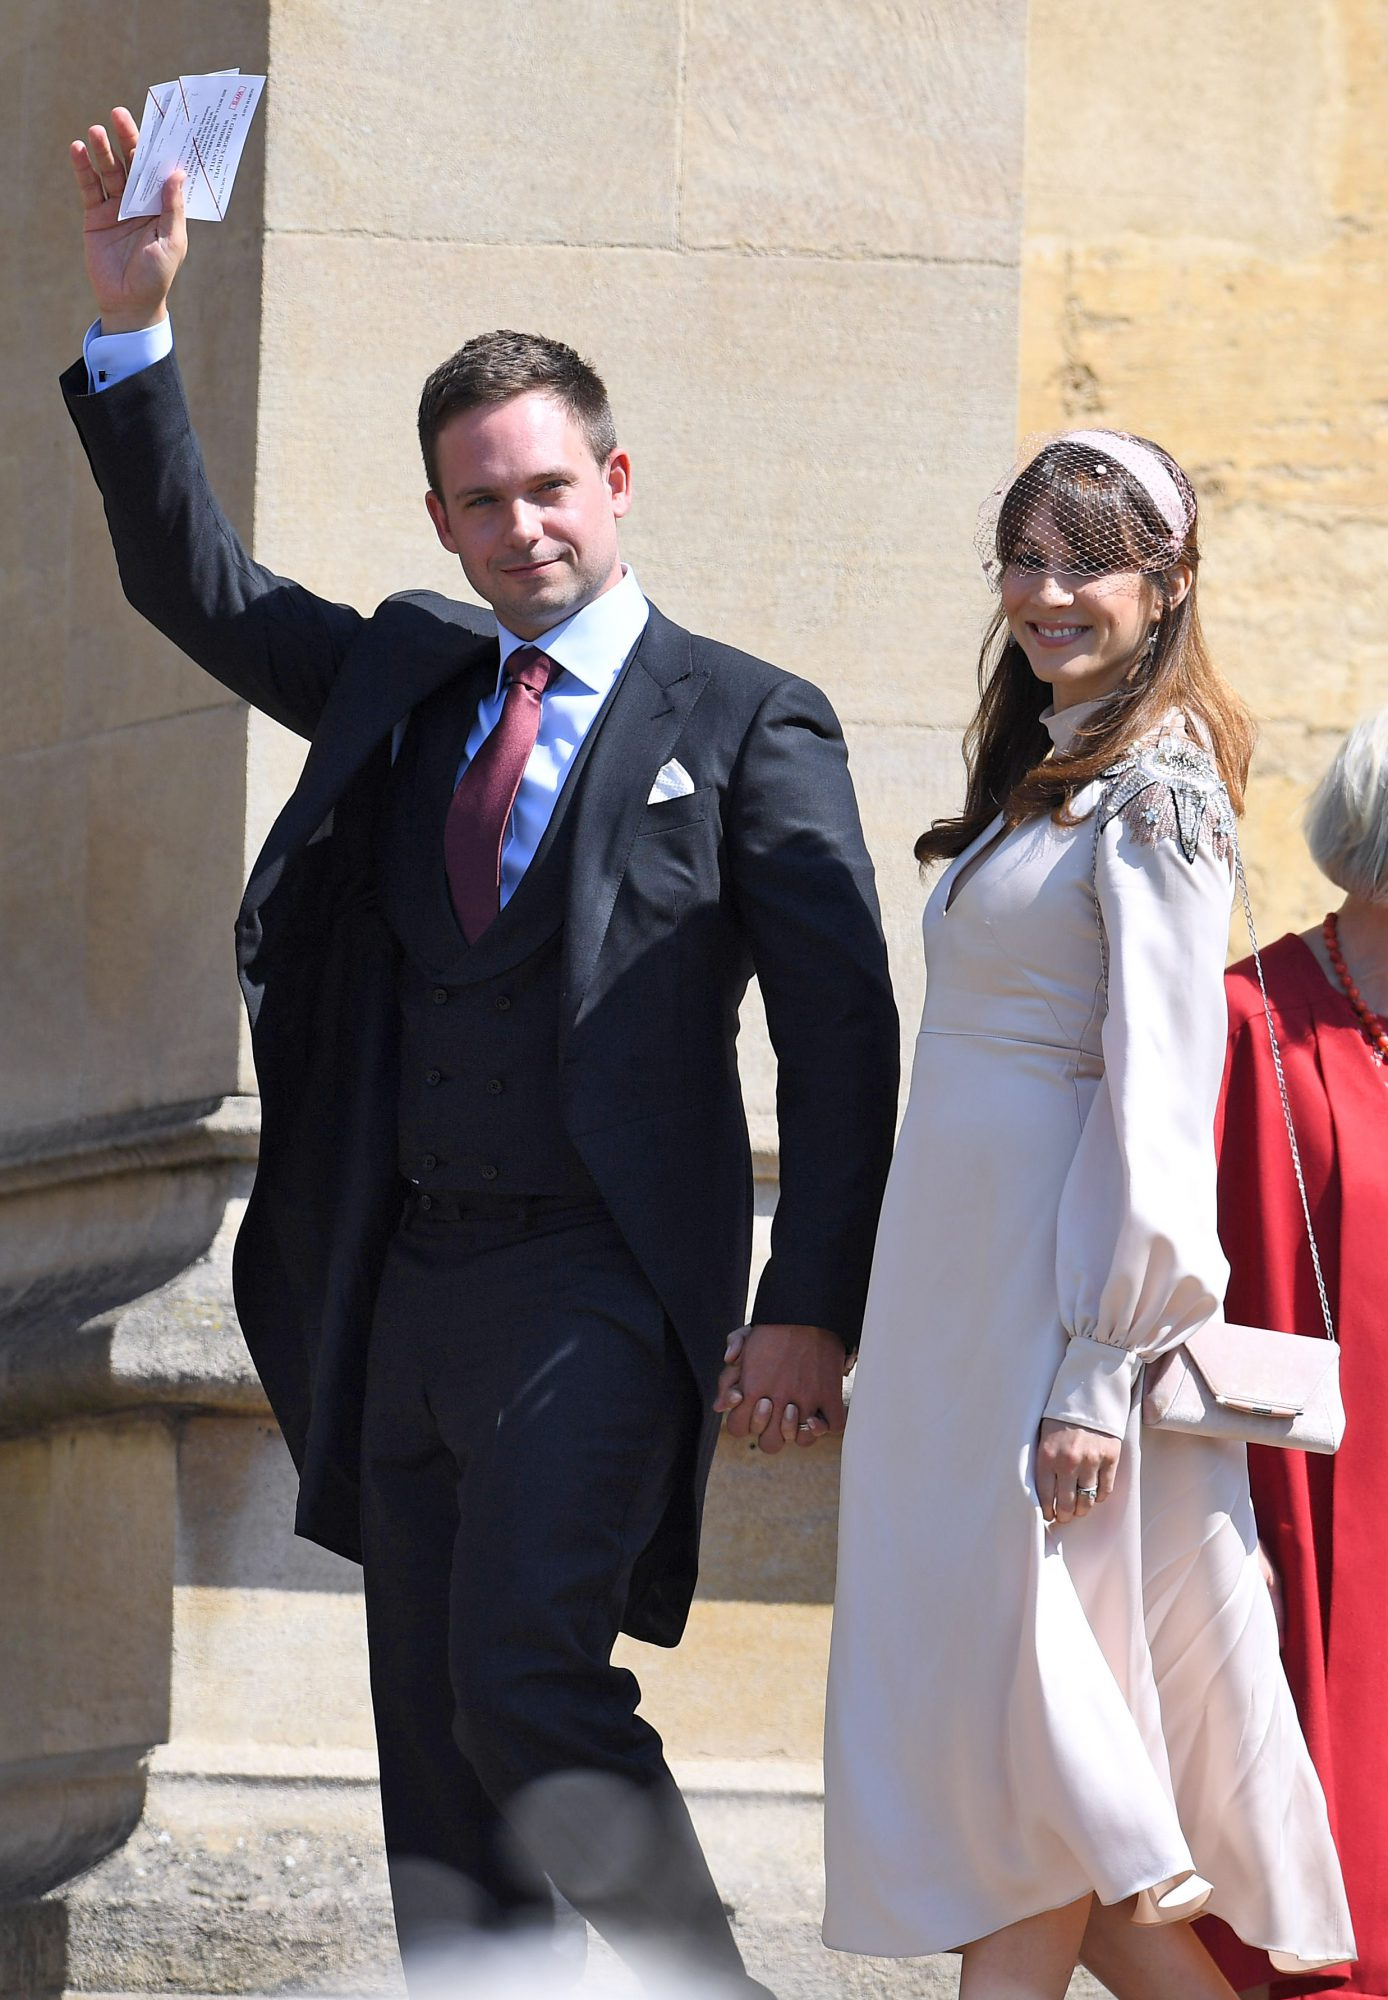 Hats Off! The Best Fascinators at Meghan Markle and Prince Harry's Royal Wedding